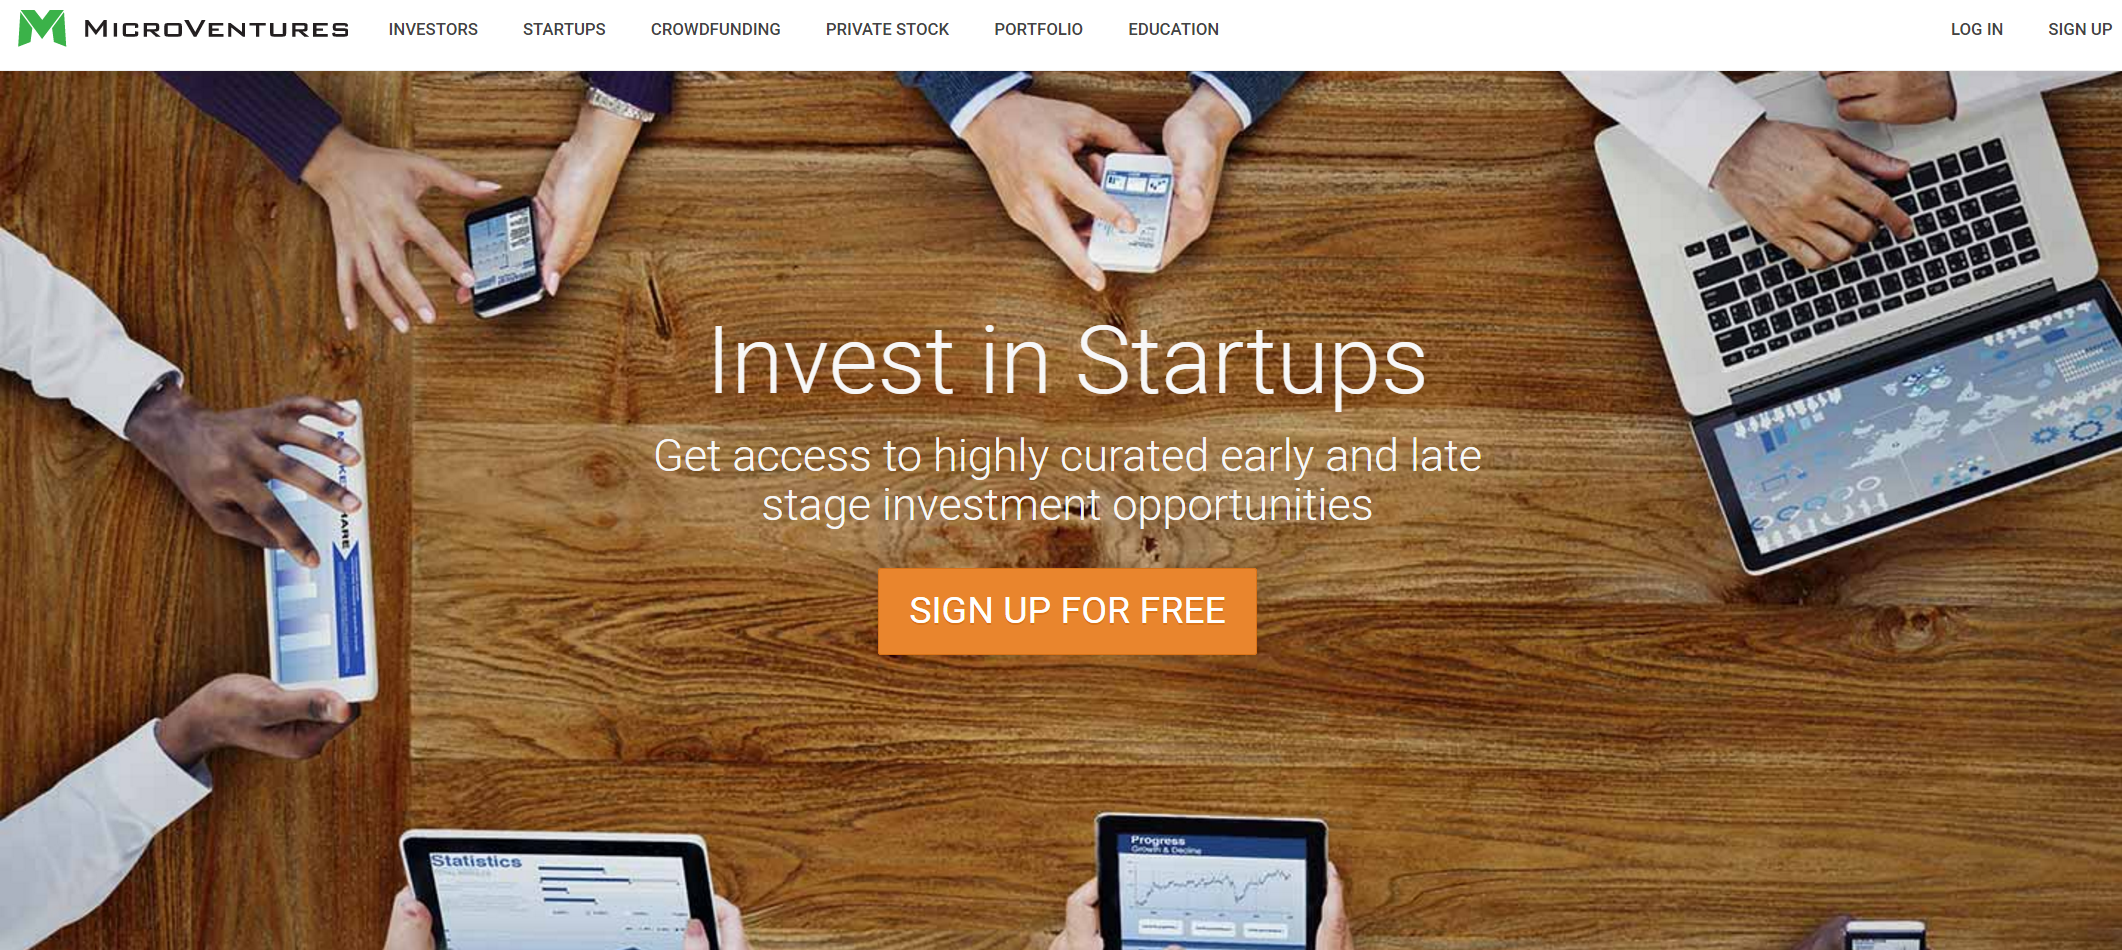 Venture Capital Start-up Hell: Abuse, Narcissism and Institutional